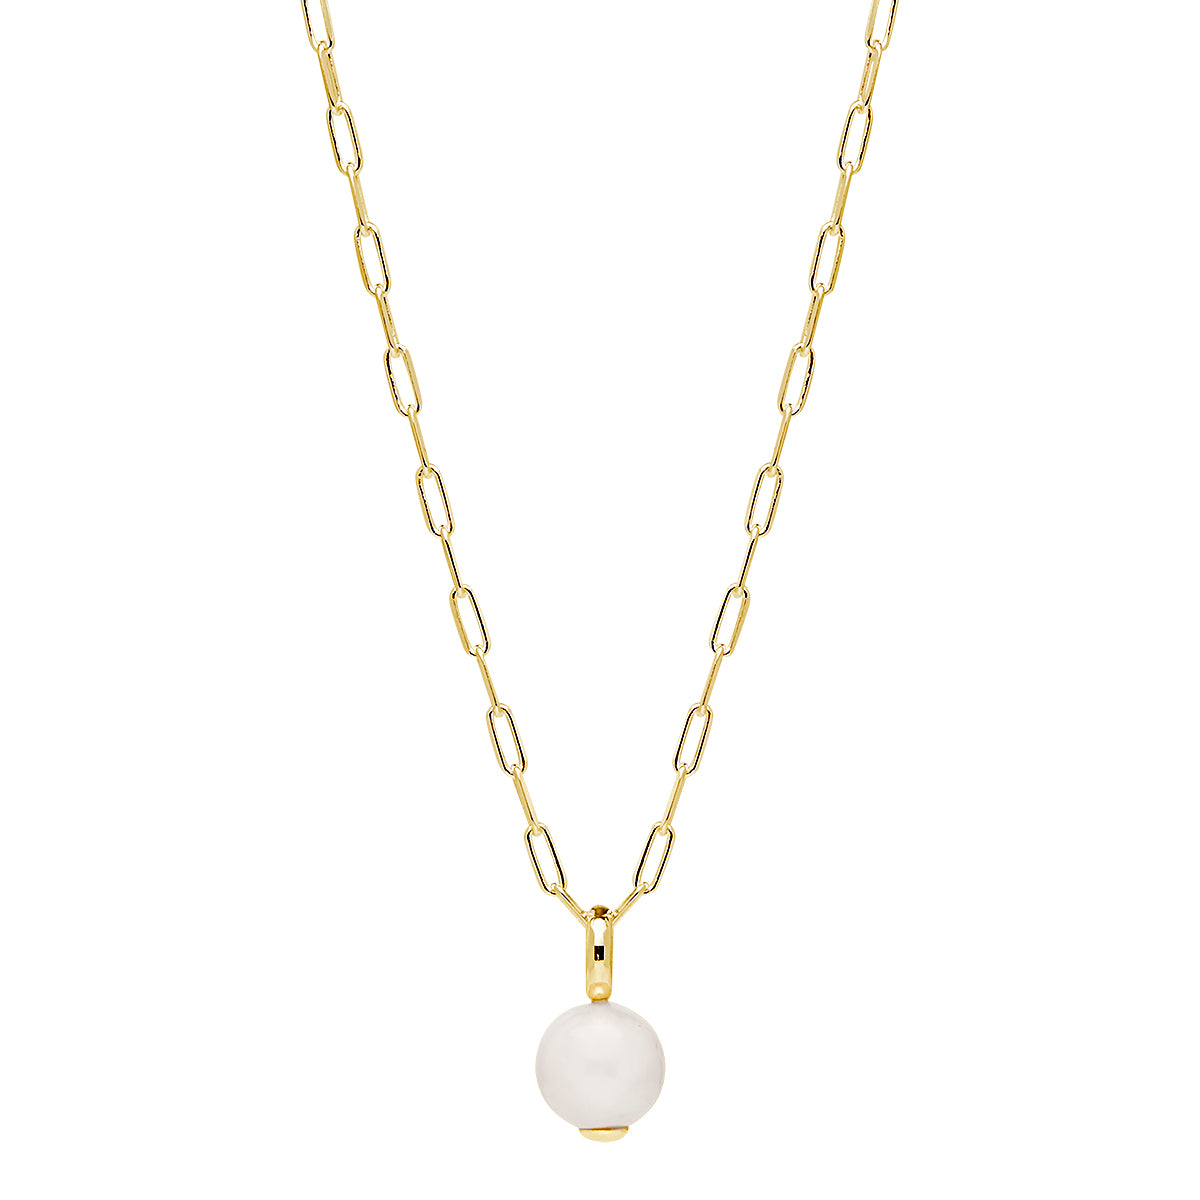 Ms Perla Gold Necklace